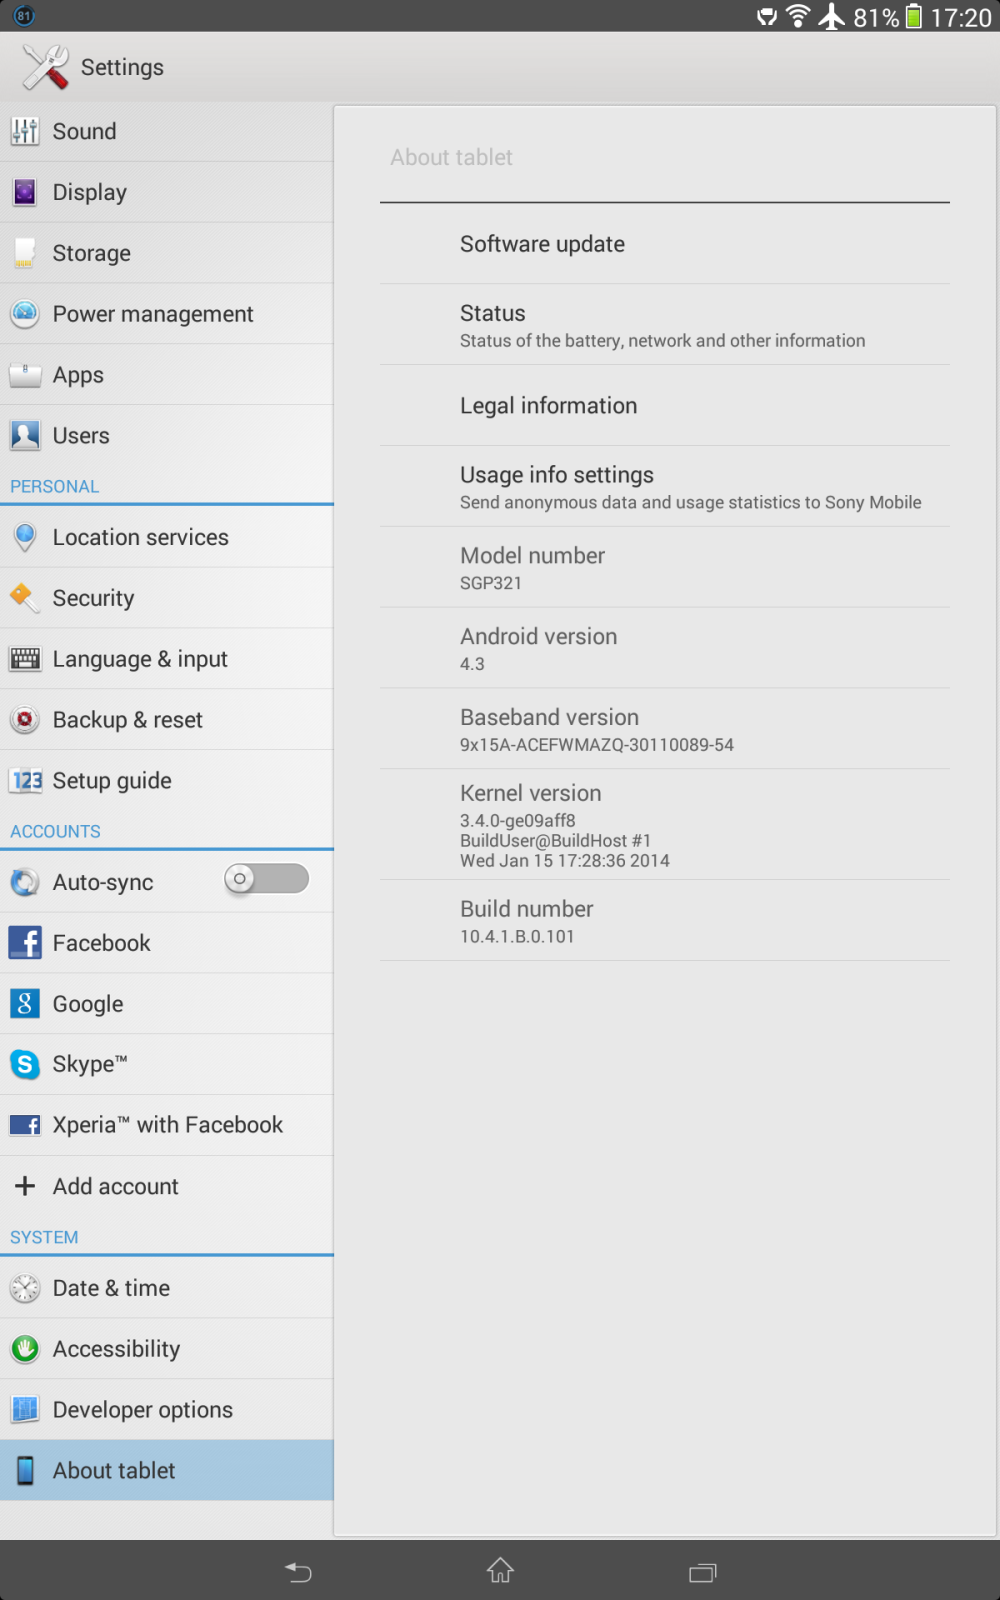 Xperia Tablet Z 10.4.1.B.0.101 firmware